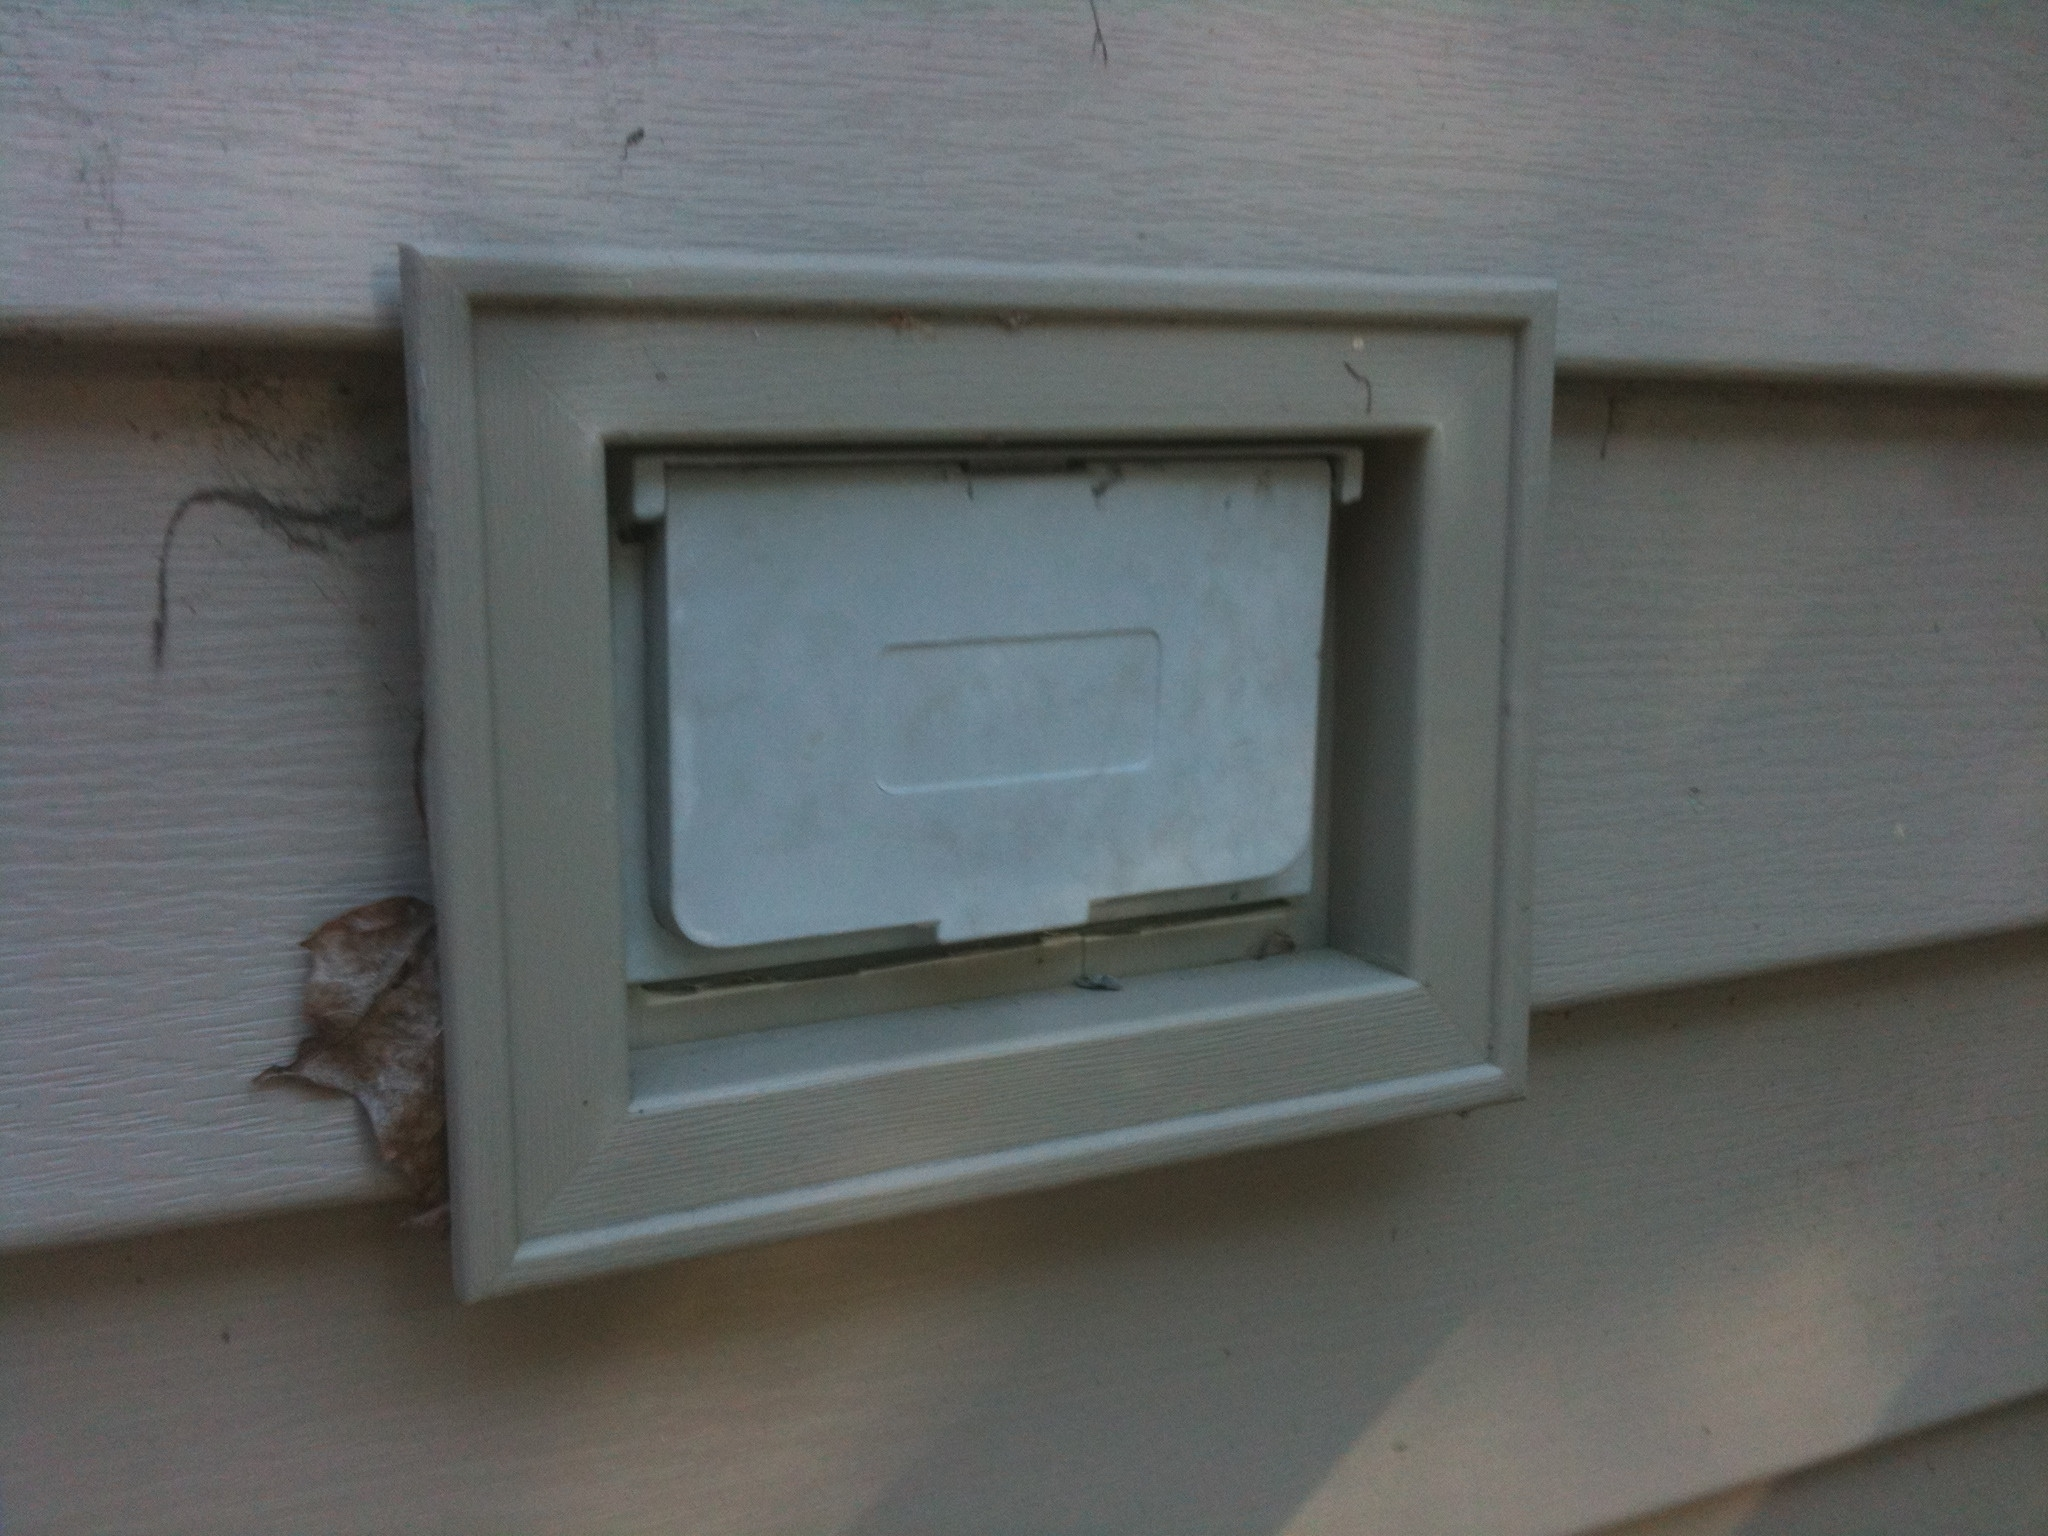 How Do I Install An Outdoor Receptacle Box On Vinyl Siding? – Home For Favorite Hanging Outdoor Lights On Vinyl Siding (View 12 of 20)